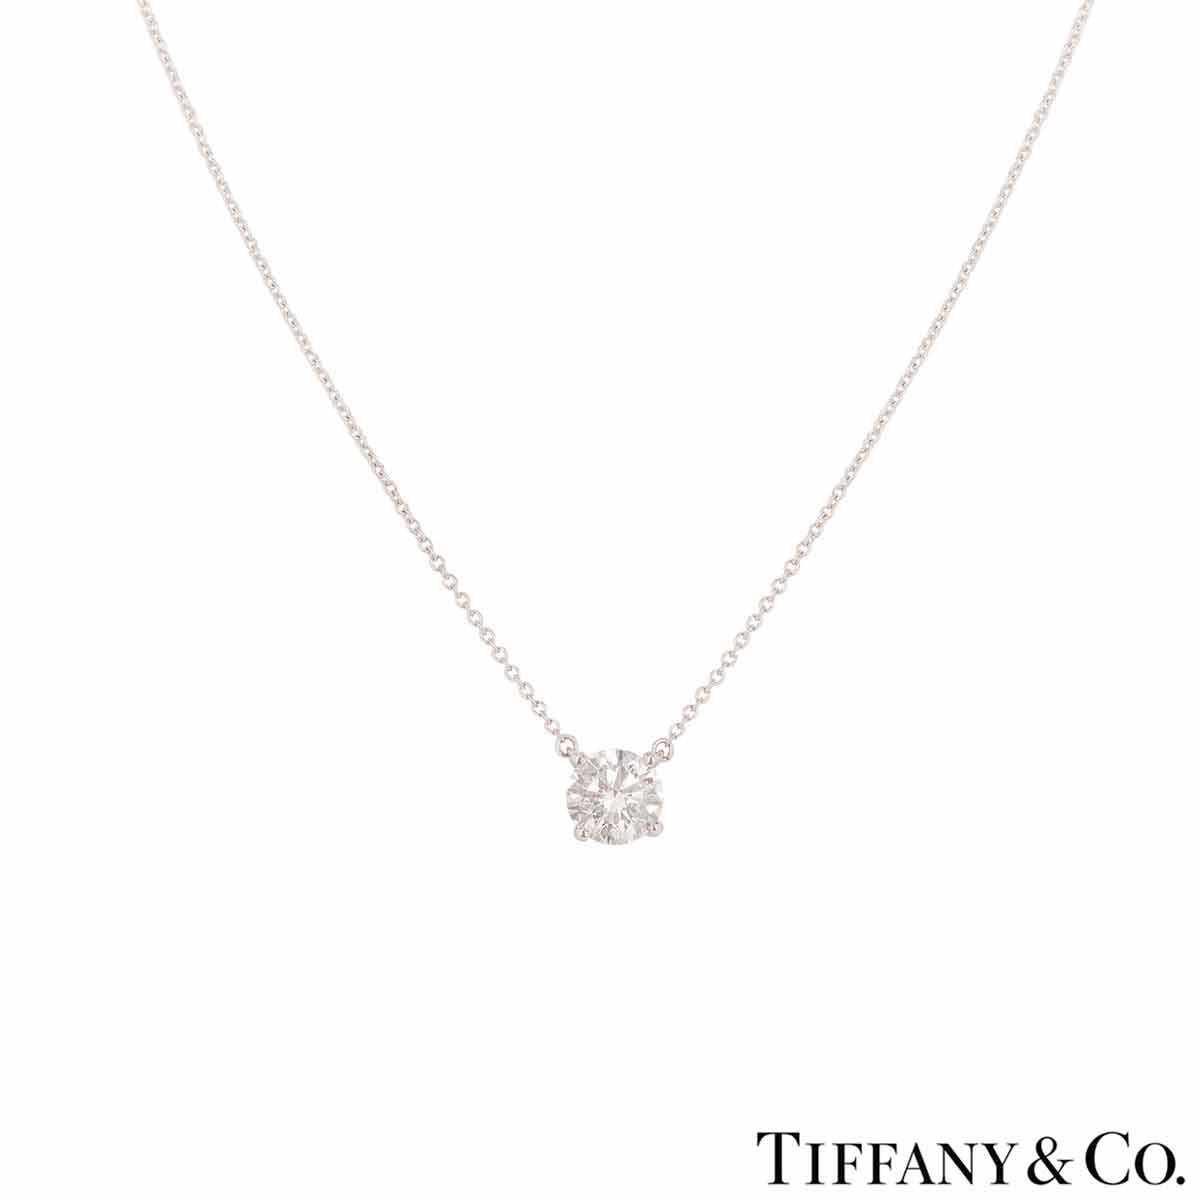 Tiffany & Co. Platinum Diamond Pendant 1.45ct F/VVS2 XXX